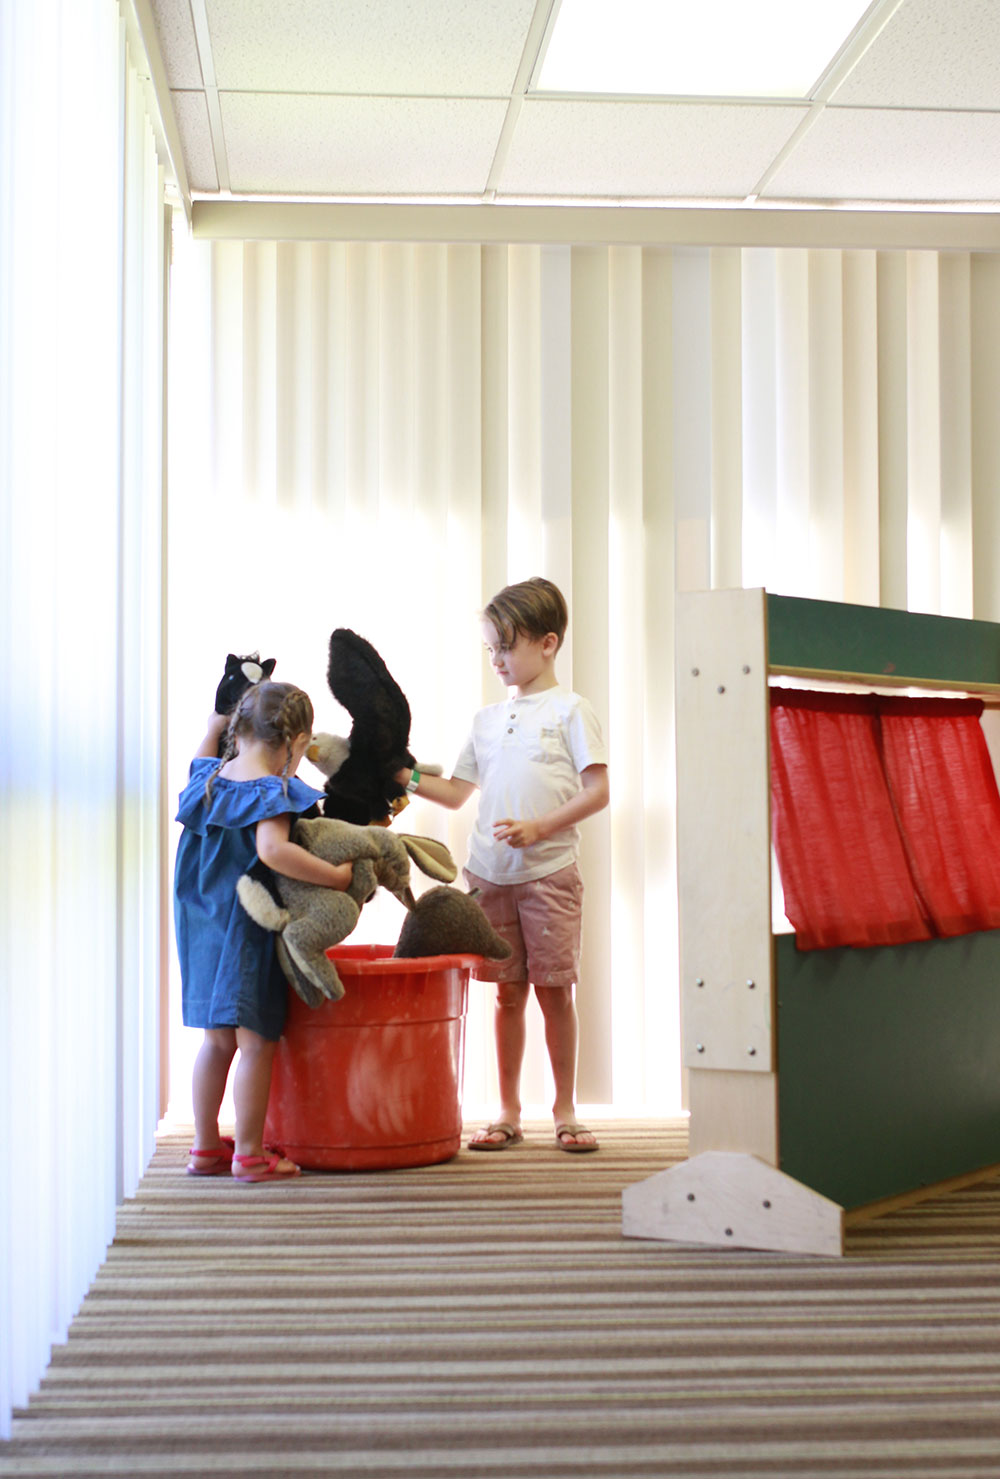 setting up for a puppet show in the coyote kids camp at the pointe hilton squaw peak resort | thelovedesignedlife.com